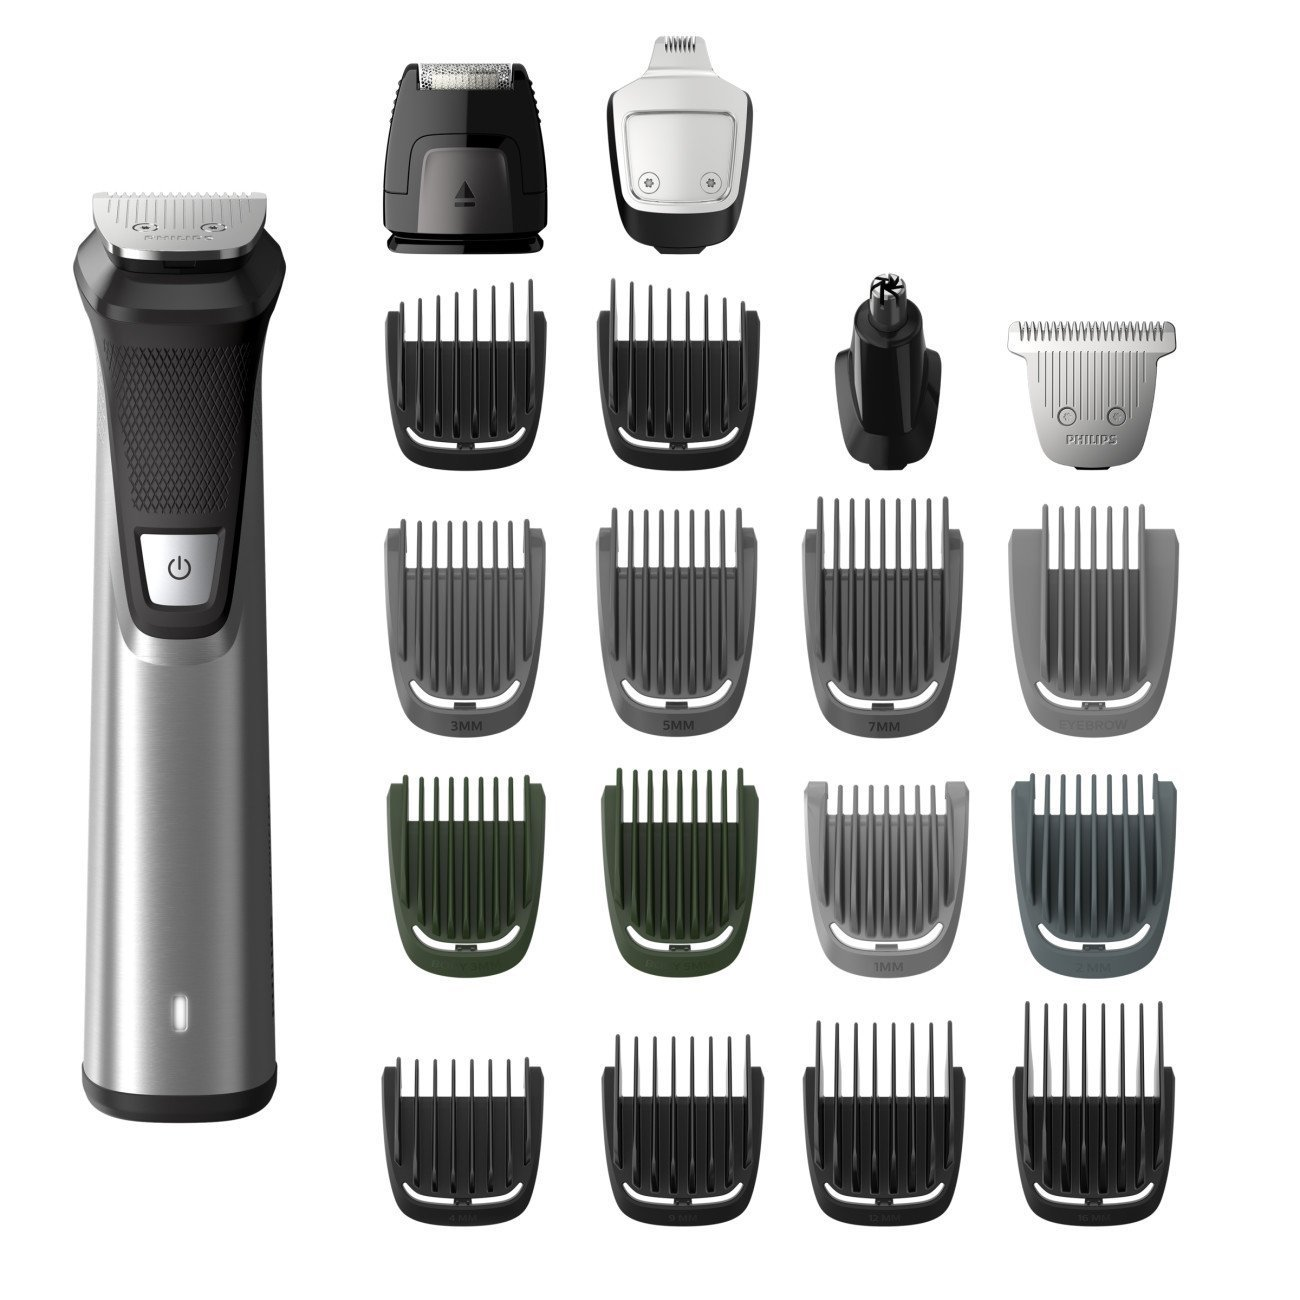 Philips Norelco All-in-One Cord/Cordless Multigroom Turbo-Powered Full Body Trimmer 23 attachment Grooming Kit by Philips Norelco